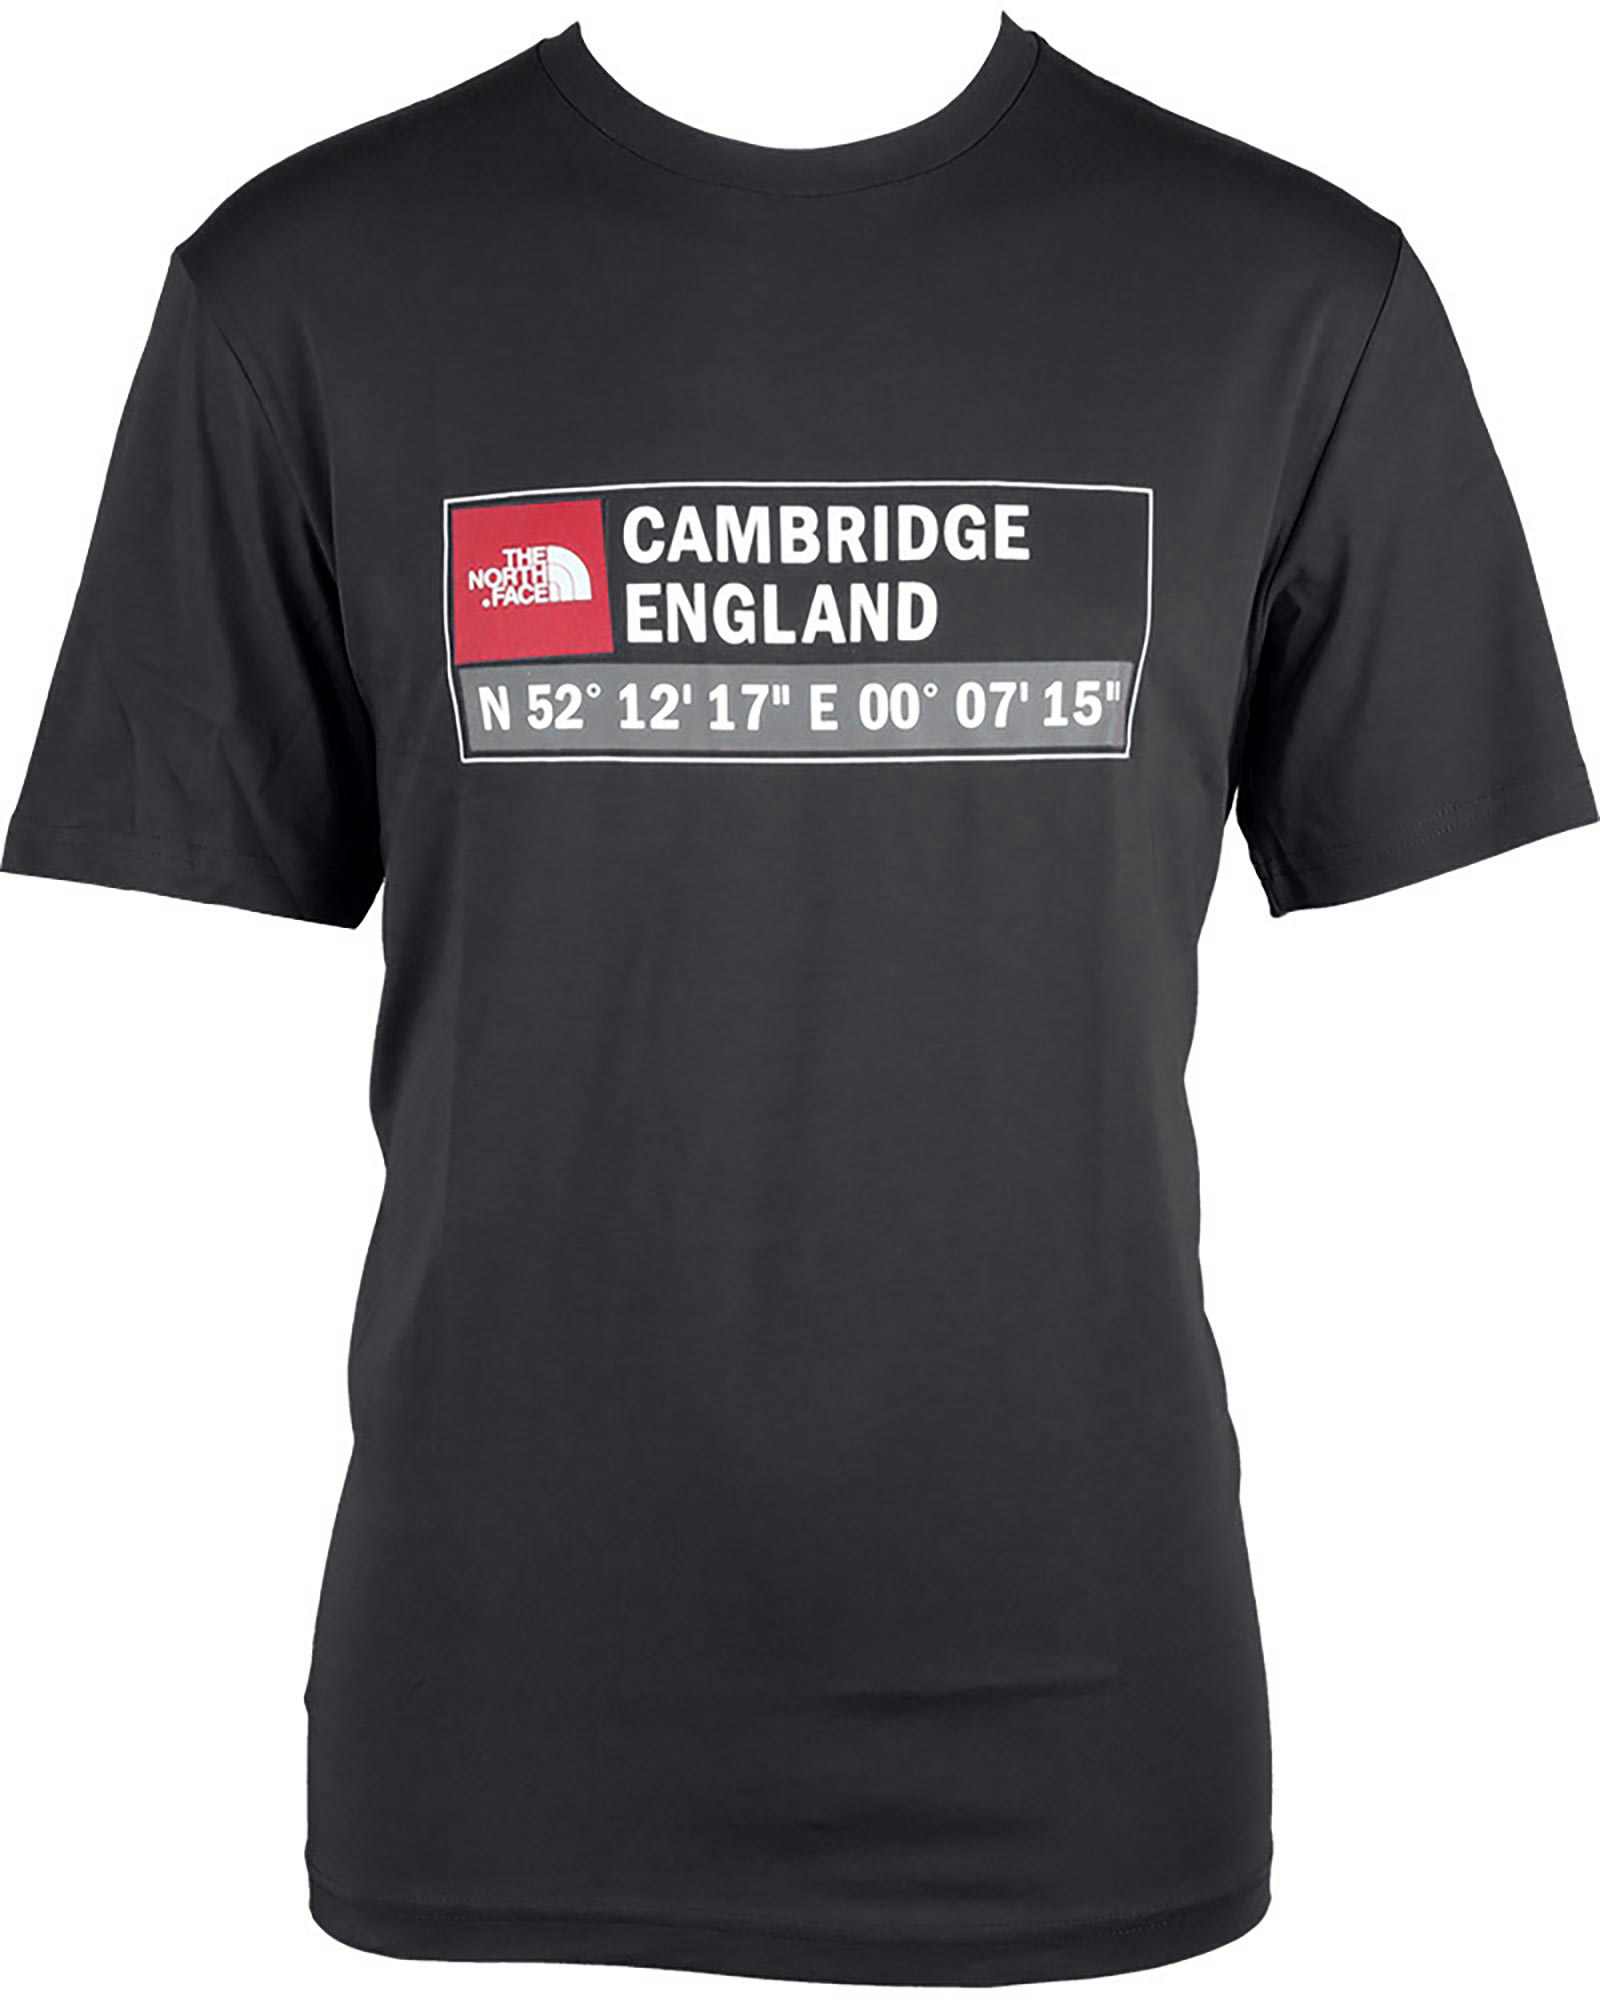 The North Face Mens Gps Logo T-shirt Cambridge